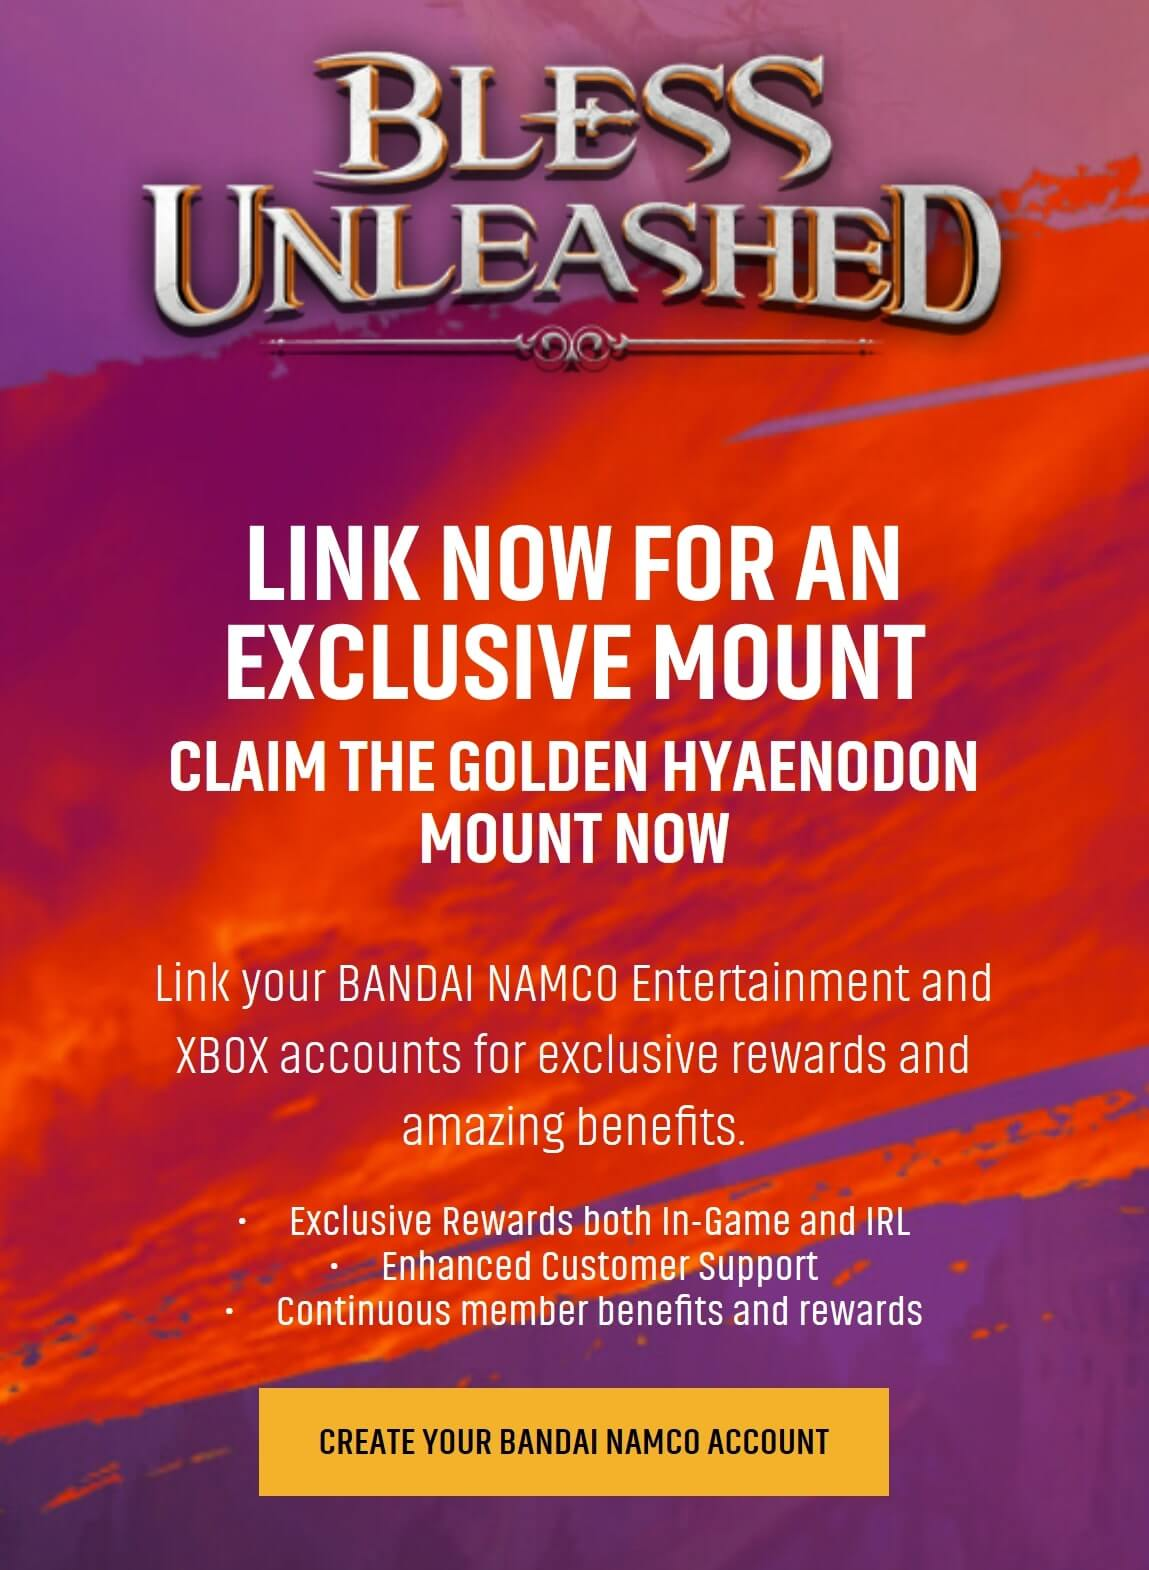 Create_Your_Bandai_Namco_Account_Bless_Unleashed_Page.jpg